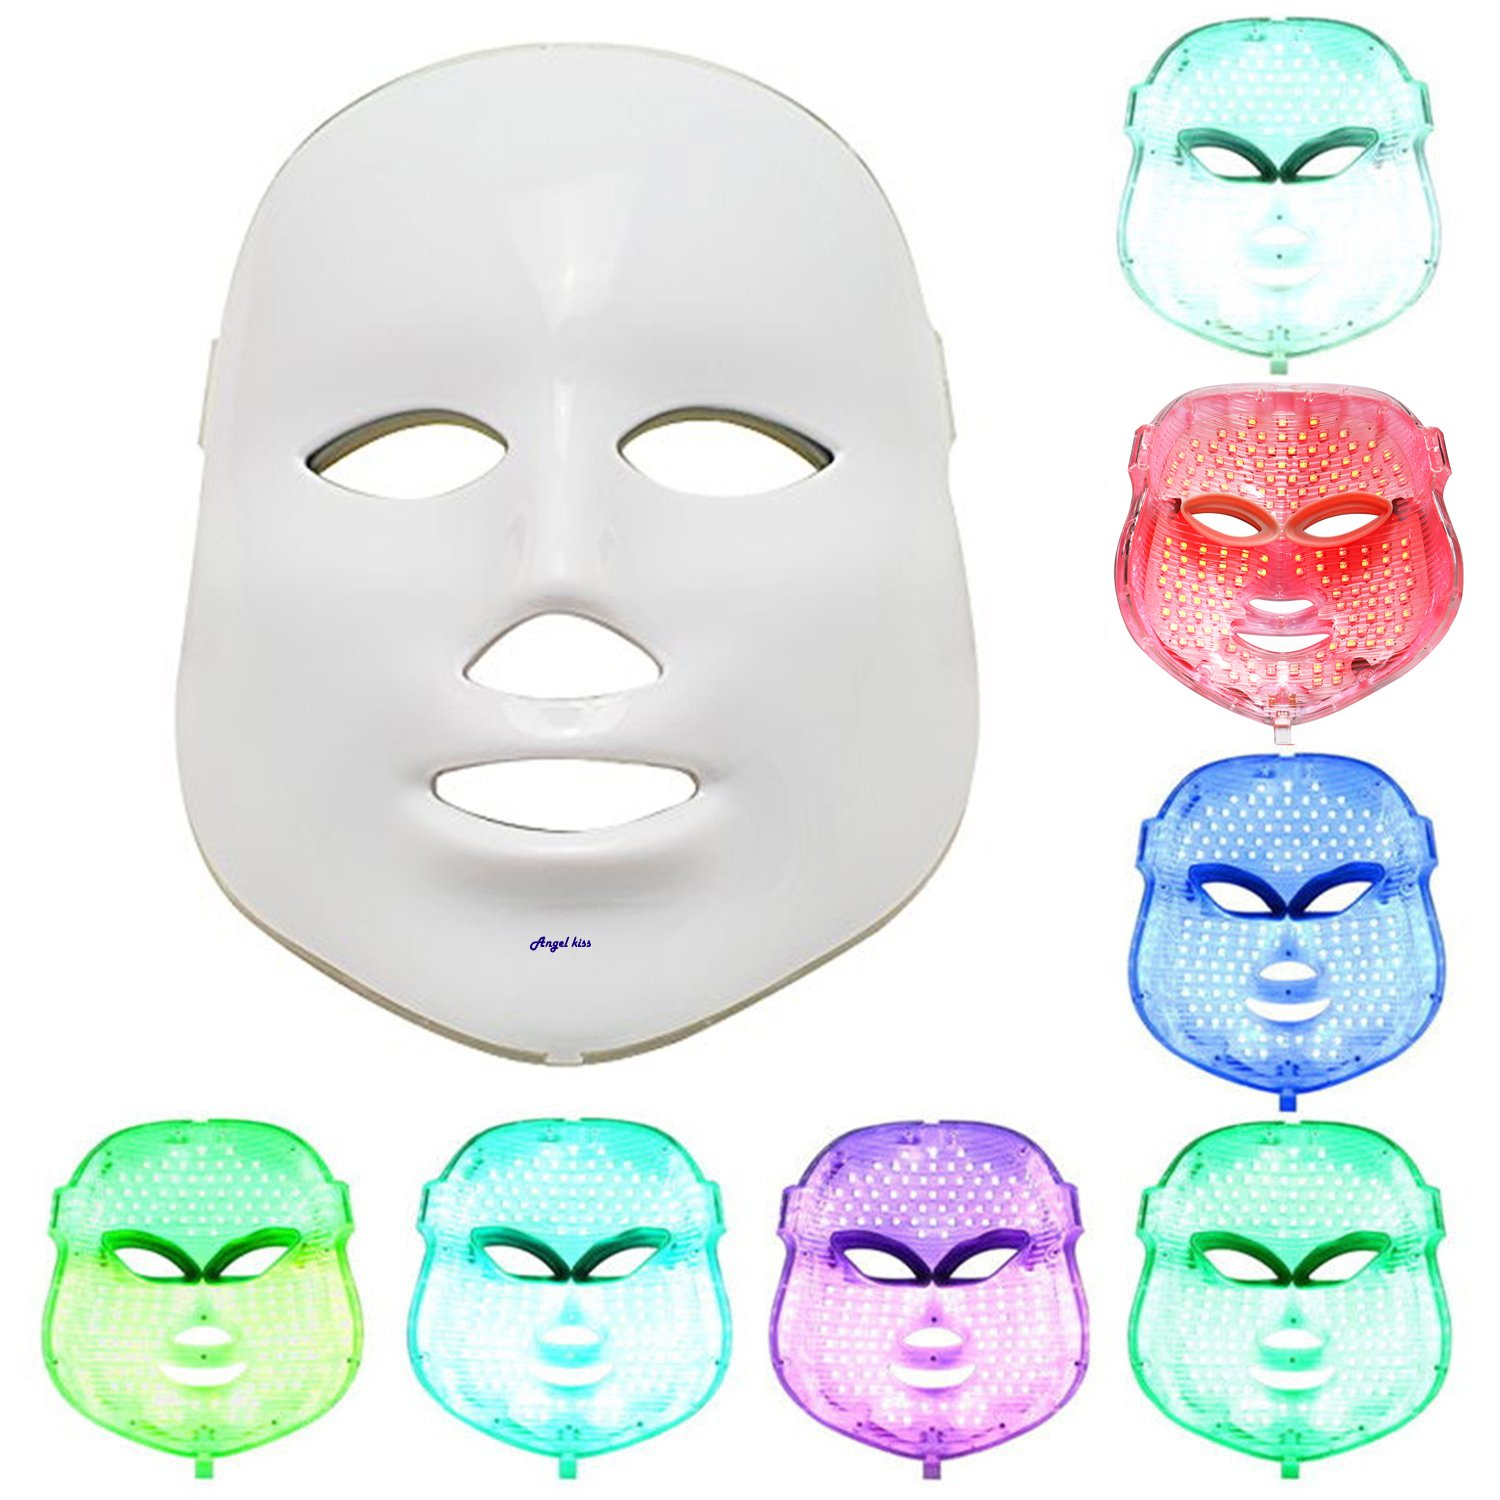 Angel Kiss LED Photon Therapy 7 Color Light Treatment Skin Rejuvenation Whitening Facial Beauty Daily Skin Care Mask (Mask+ Portable Function Board) by Angel Kiss (Image #4)